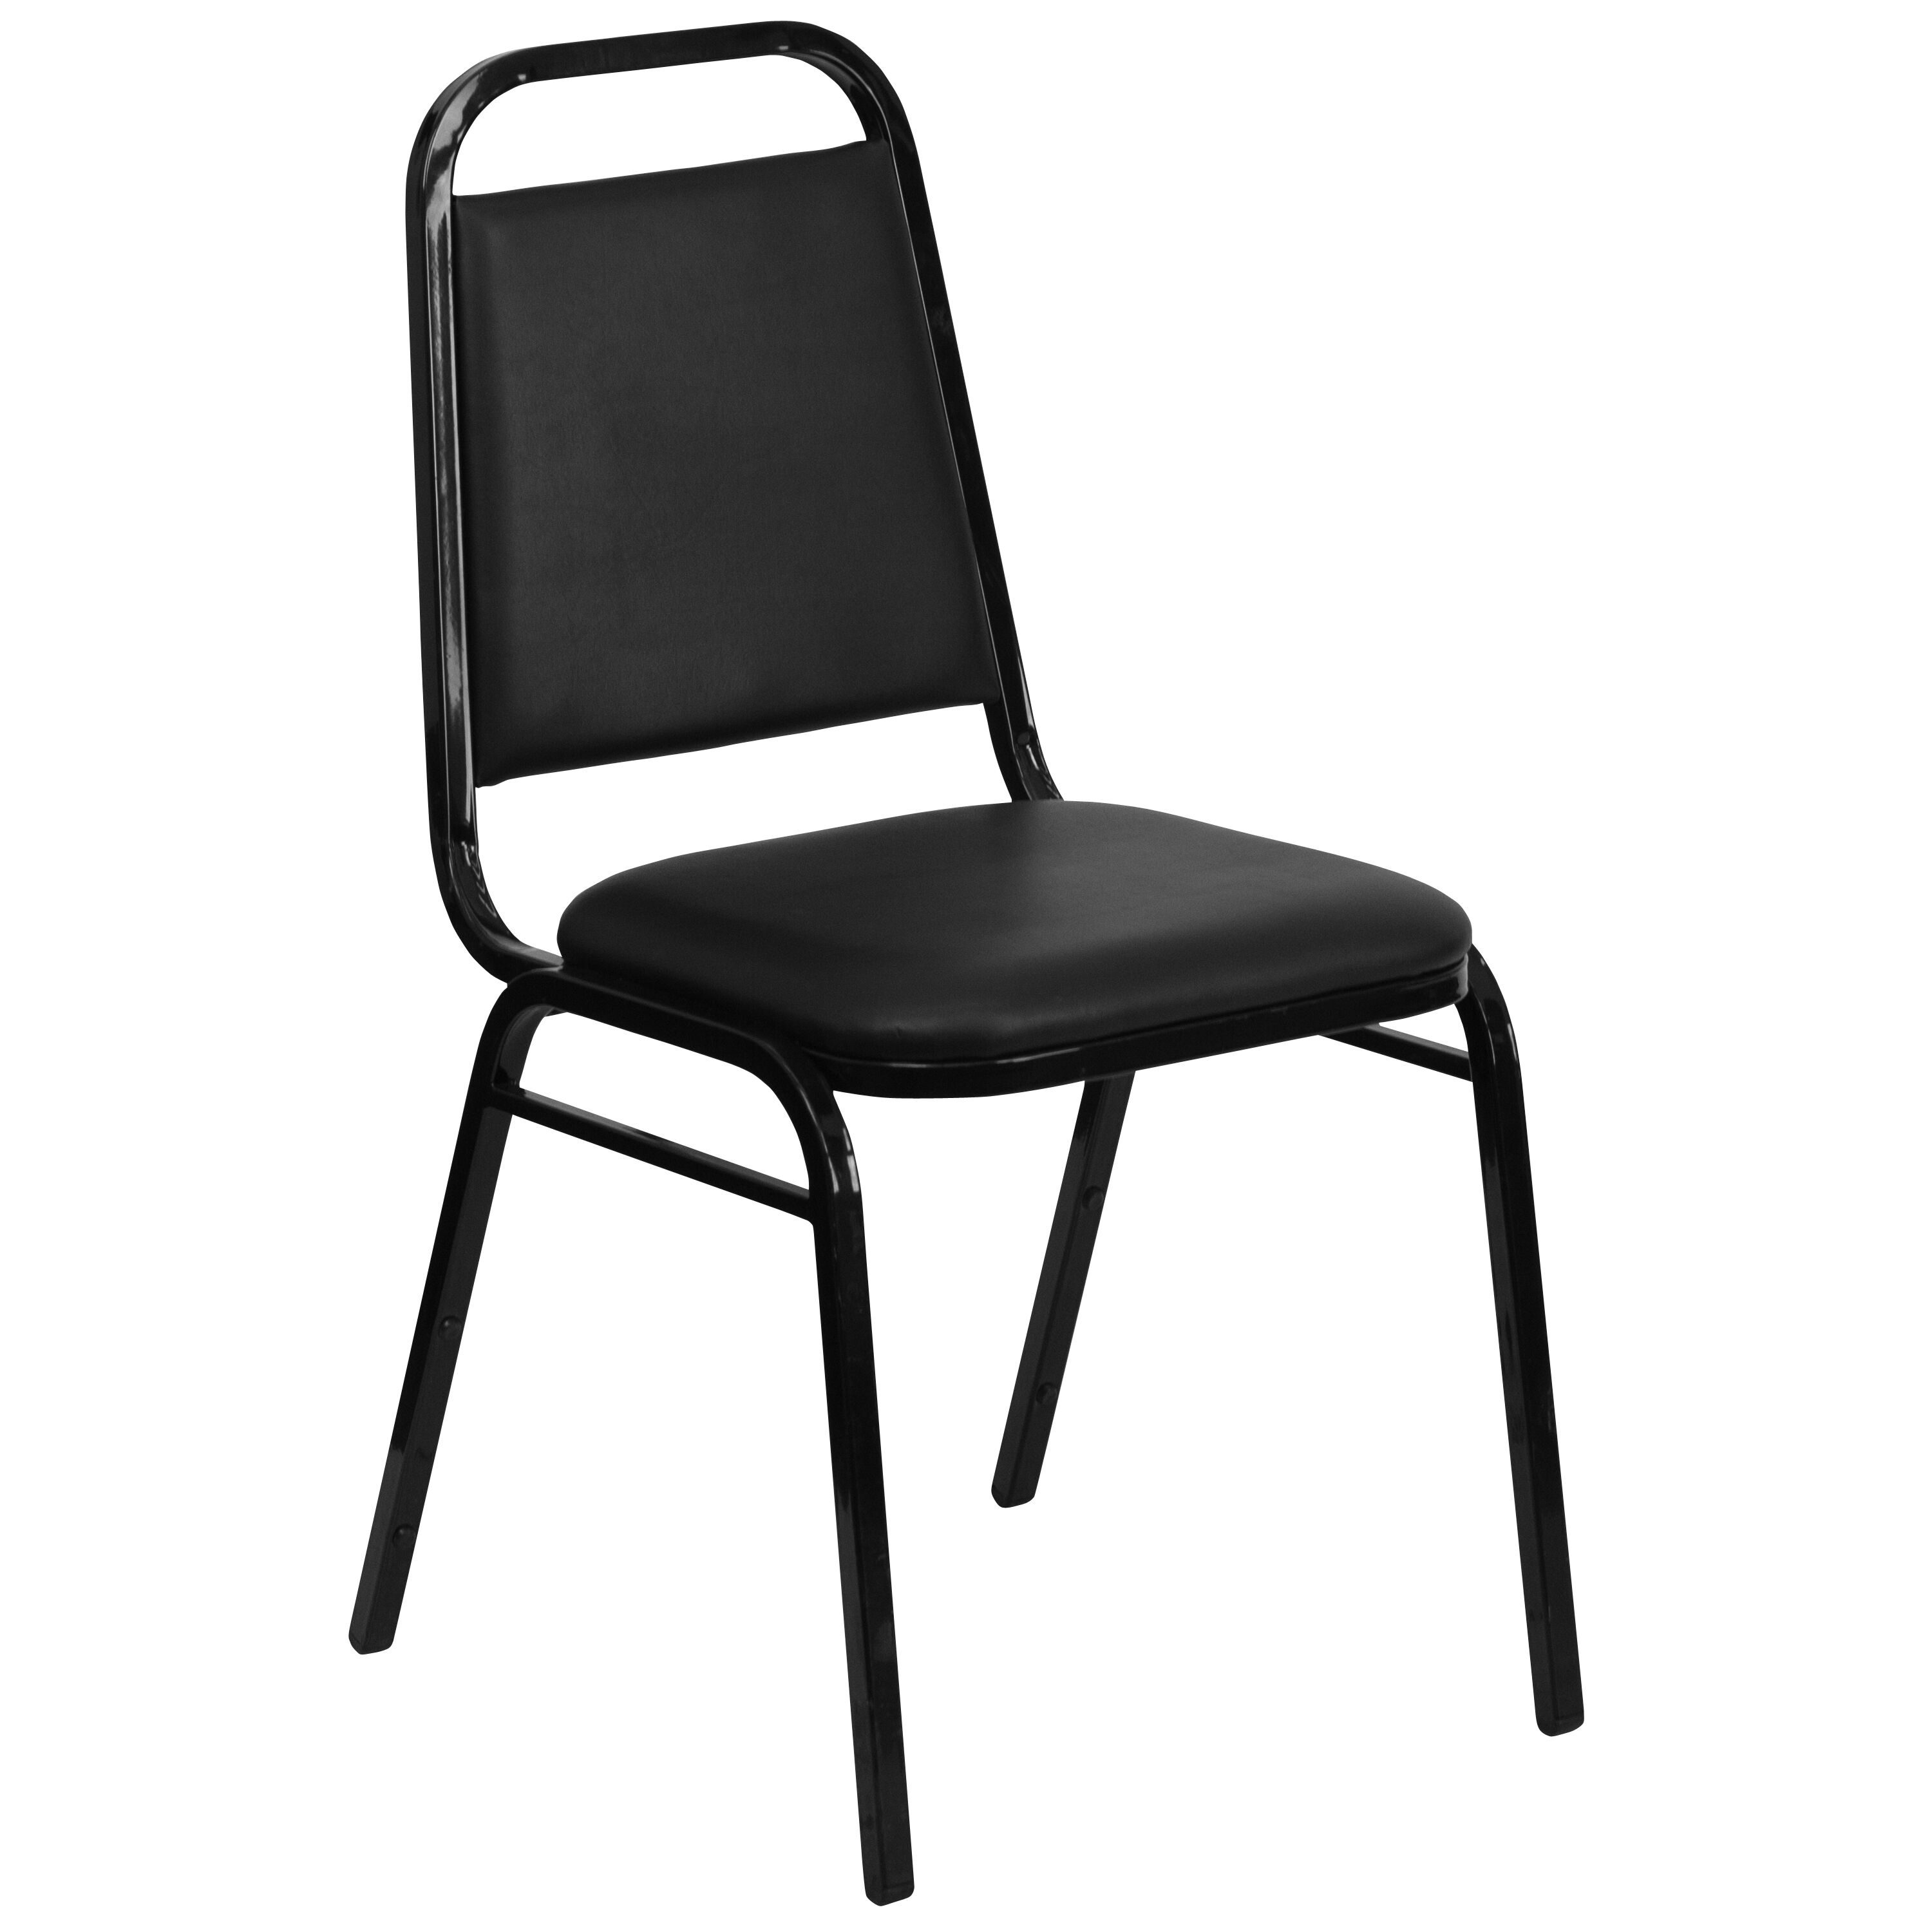 Merveilleux HERCULES Series Trapezoidal Back Stacking Banquet Chair In Black Vinyl    Black Frame